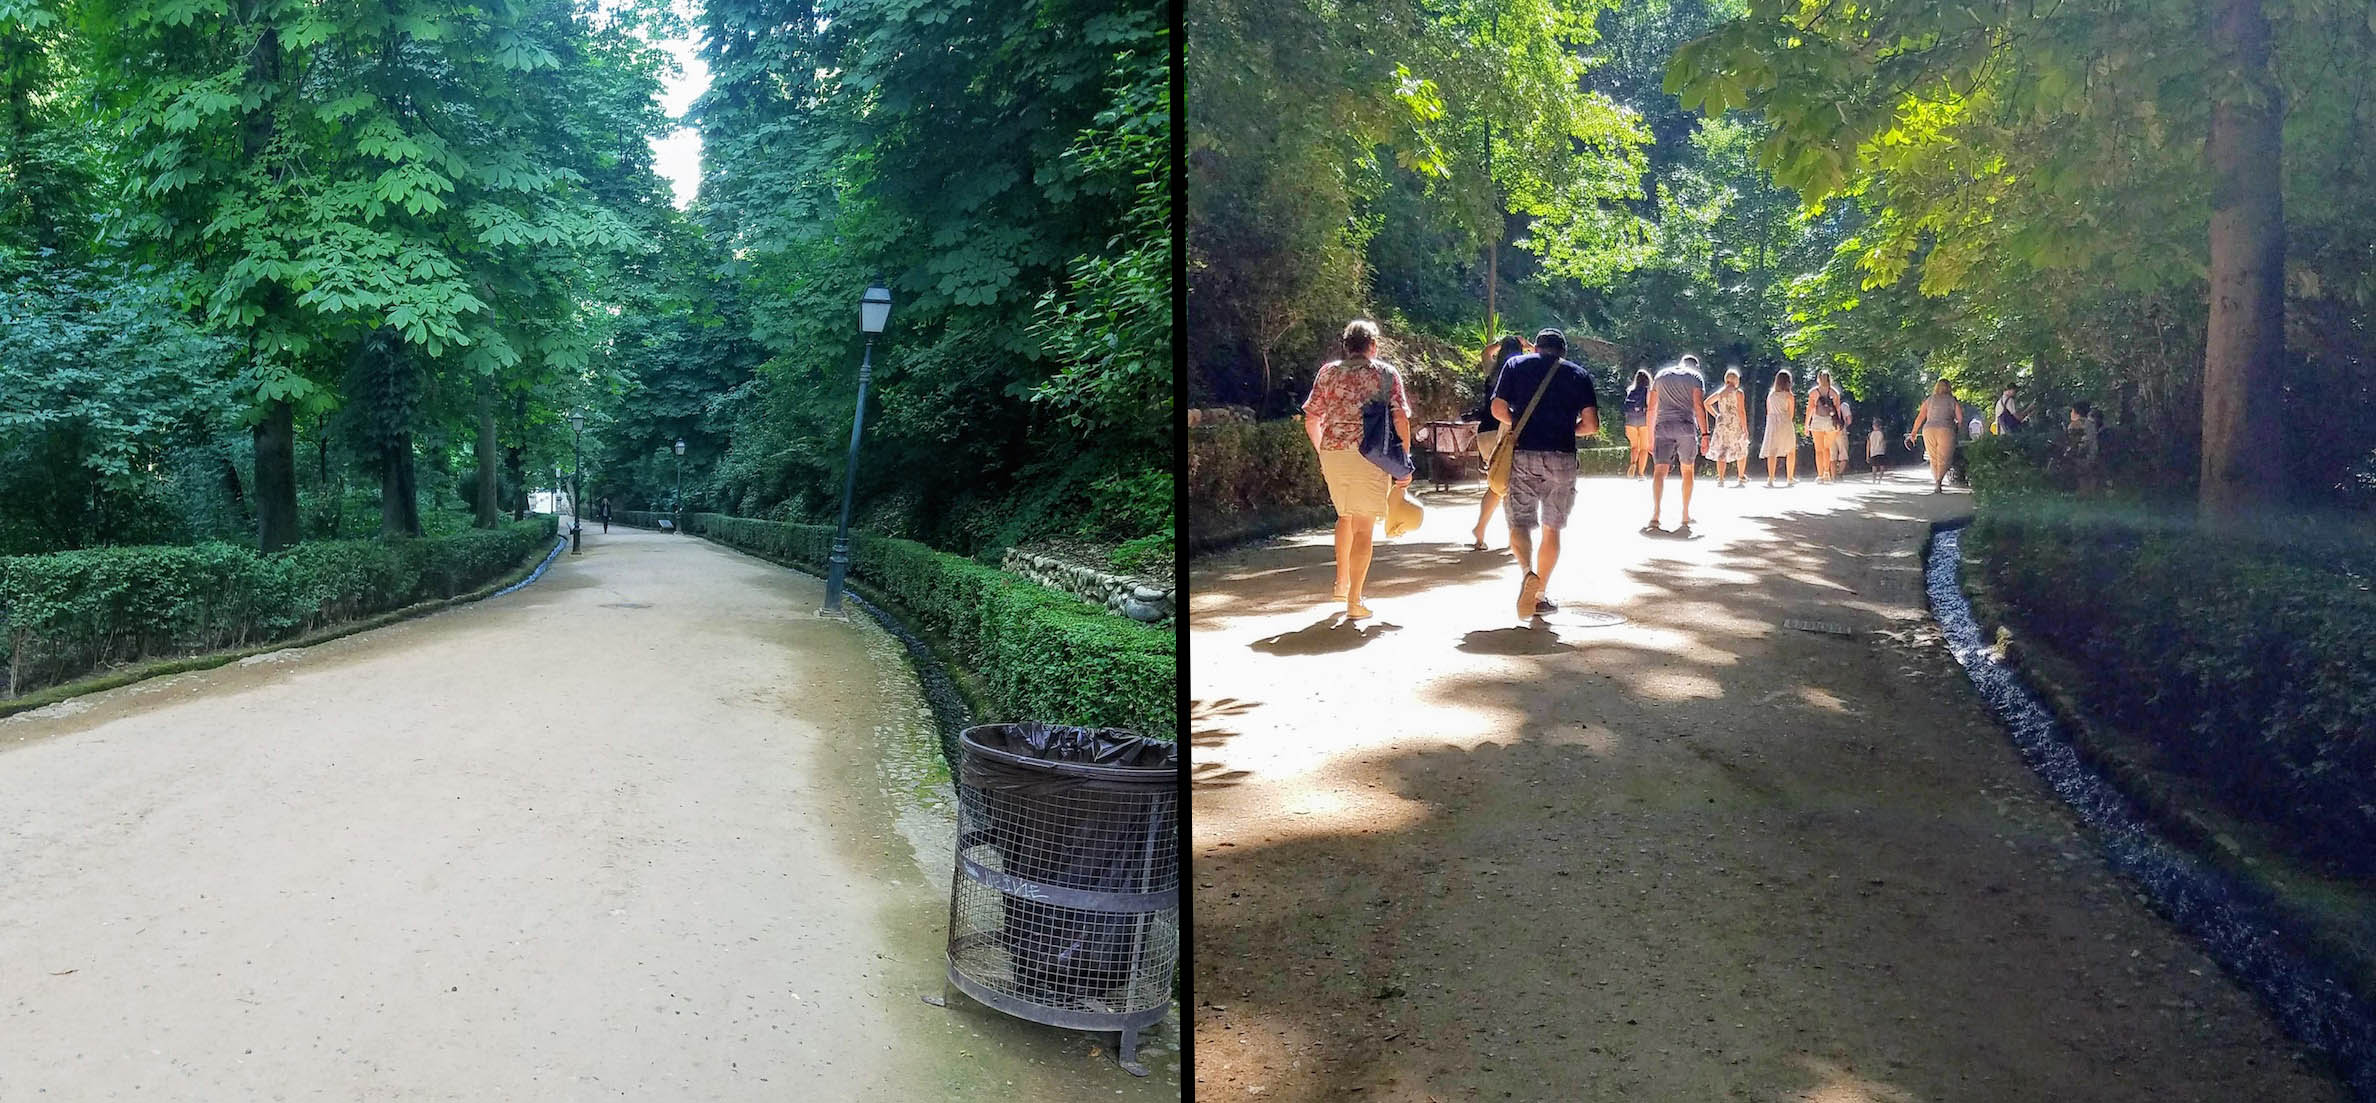 The same pathway up to the Alhambra shortly before 9am, and then later at 12:30pm, to give you an idea of how crowded it can get later in the day